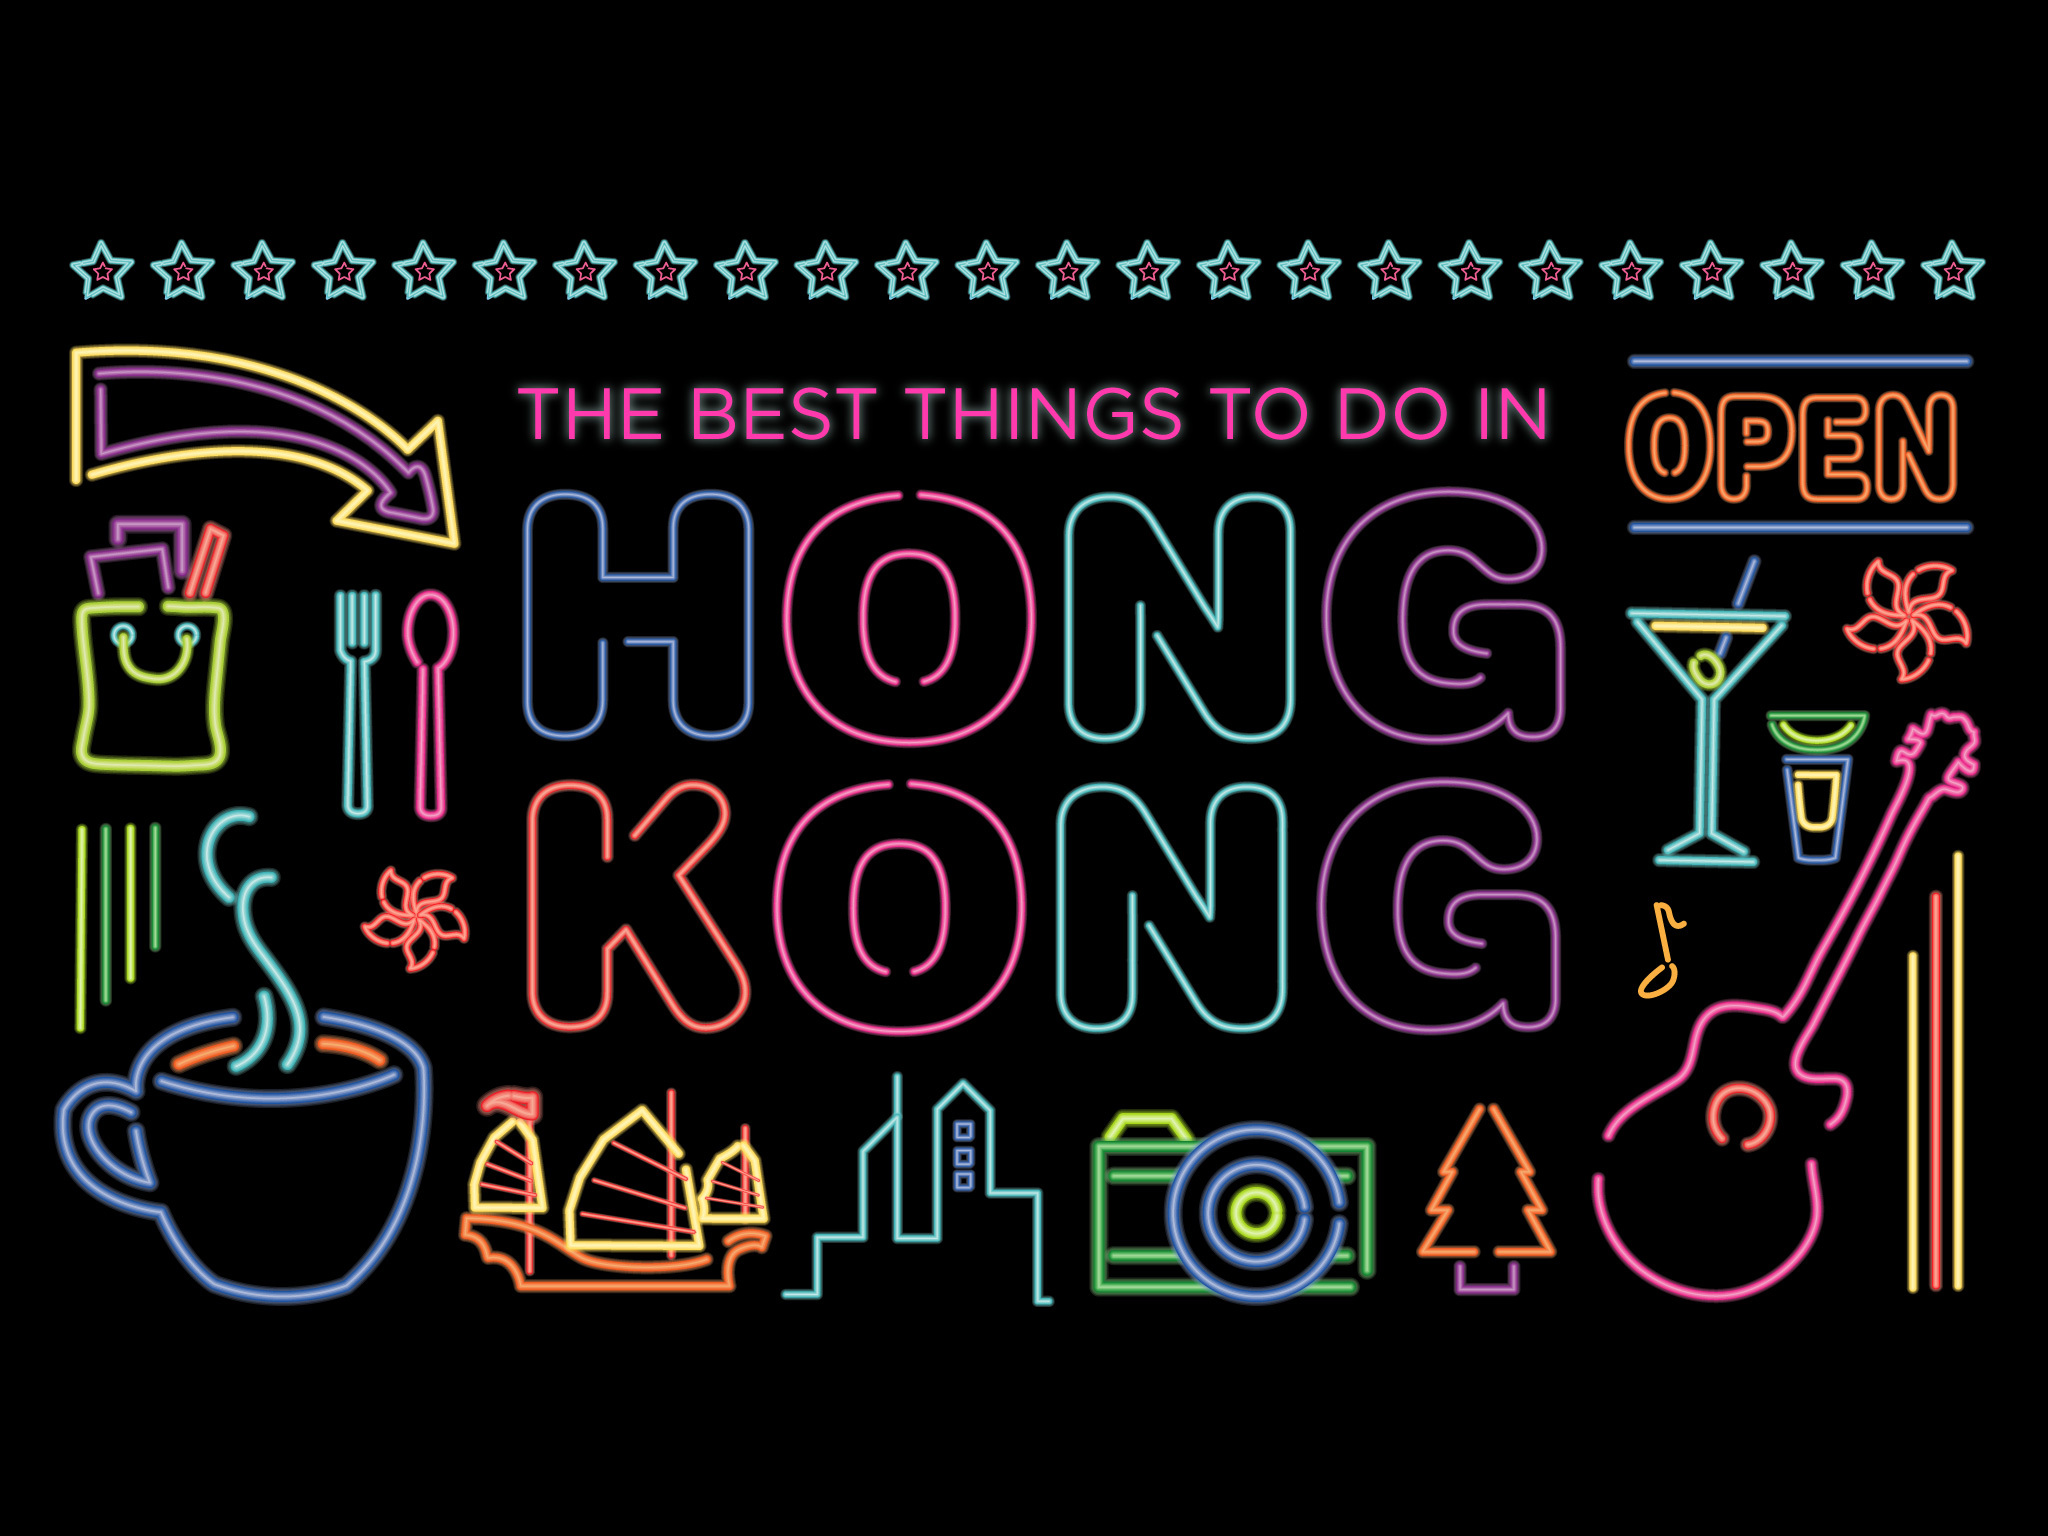 The best things to do in Hong Kong